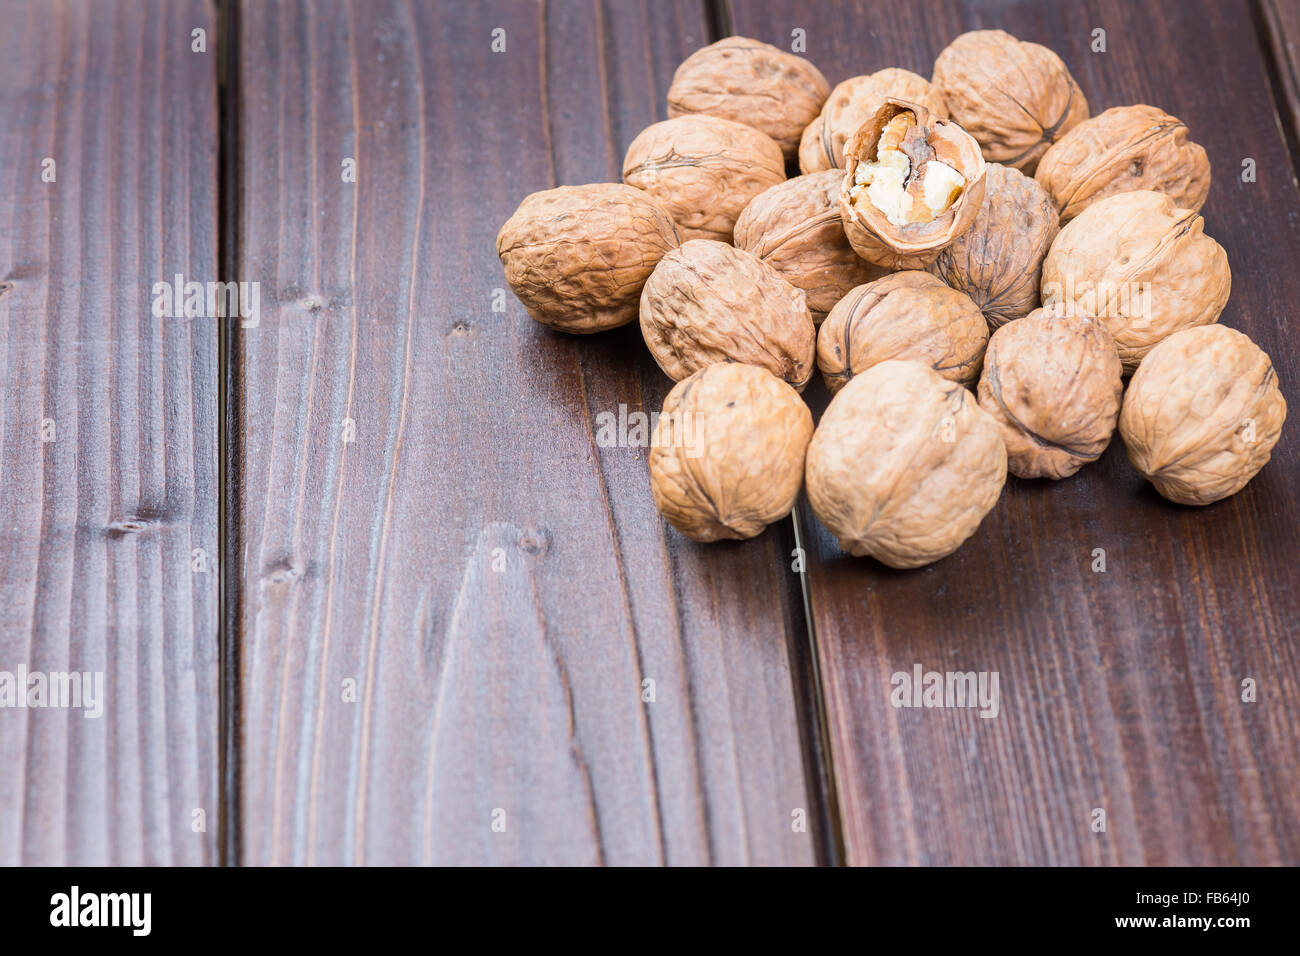 Walnut kernels and whole walnuts on rustic old wooden table - Stock Image